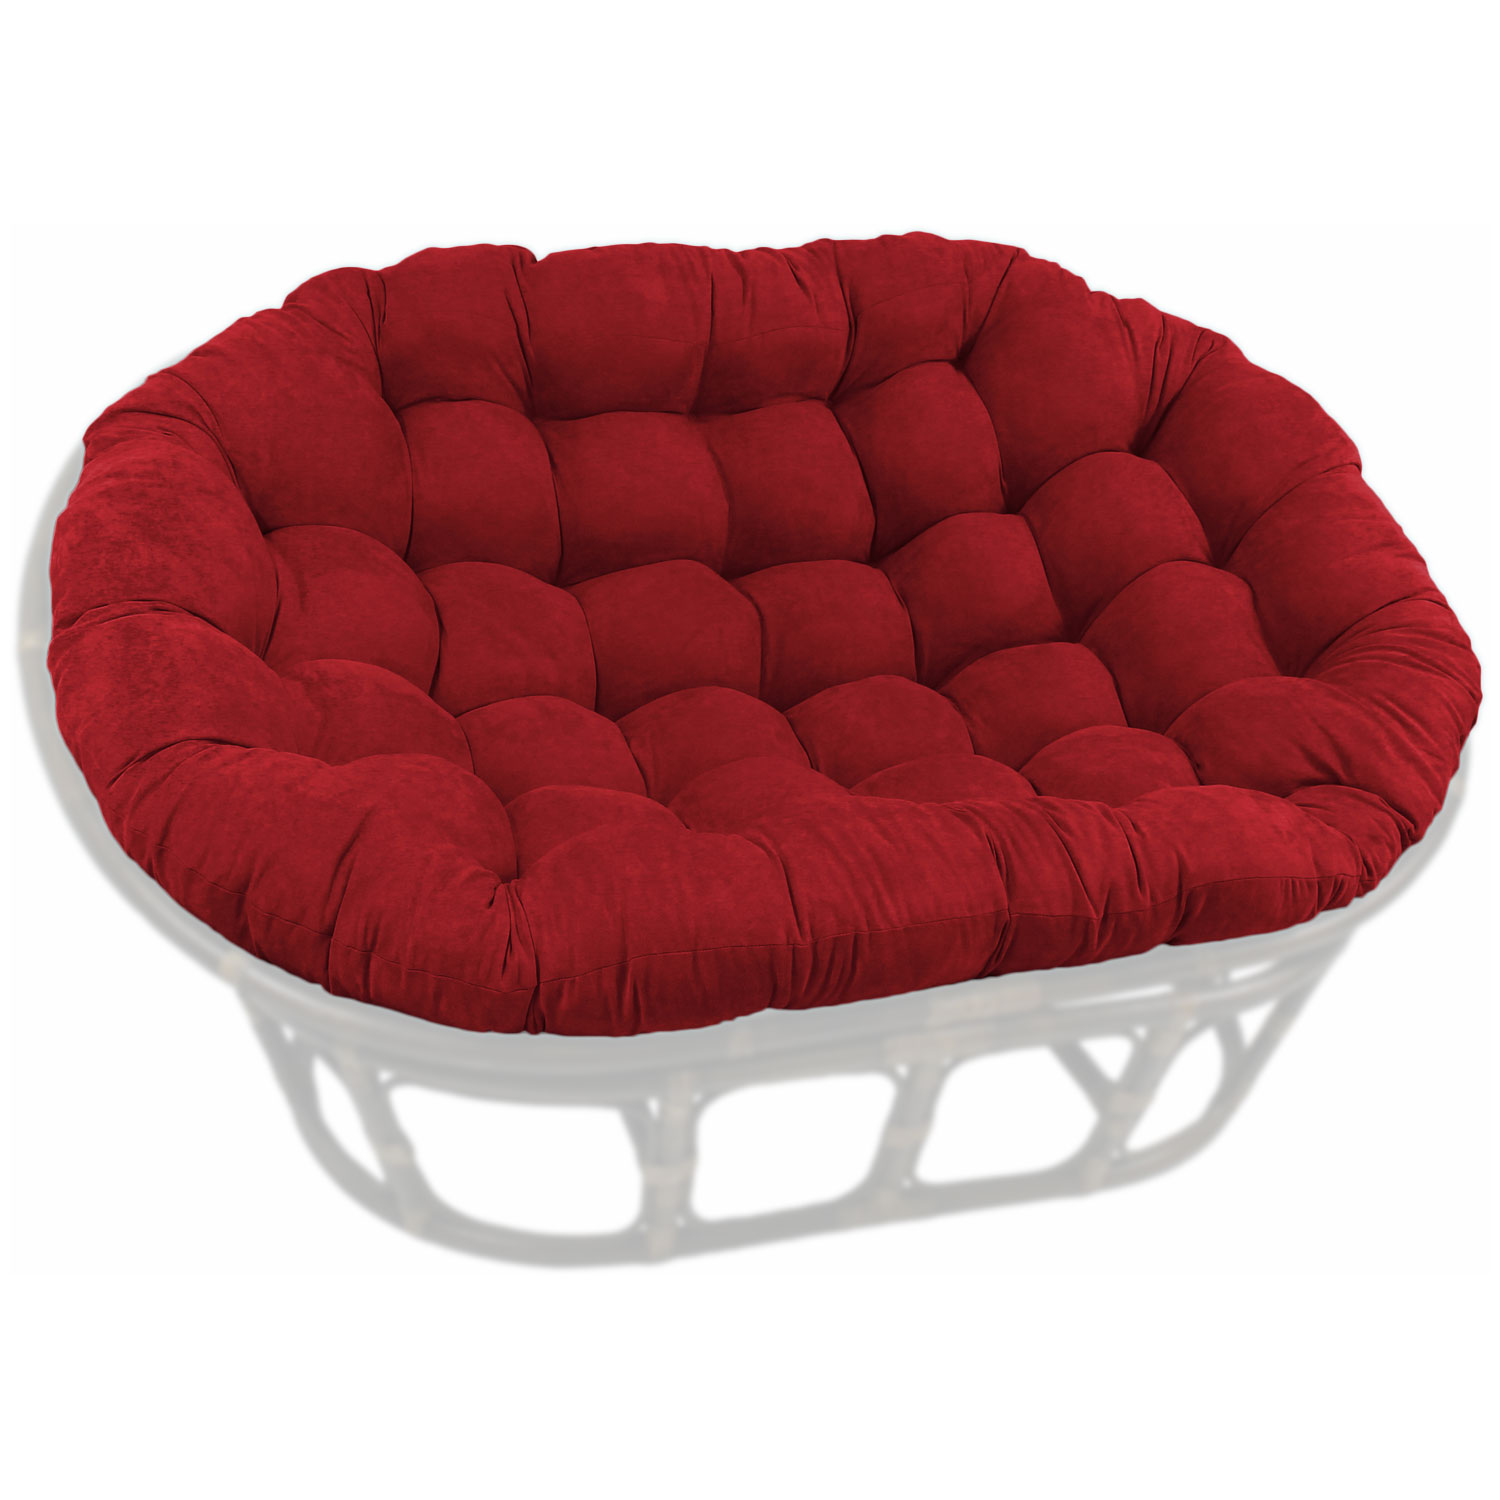 78 X 58 Oversized Double Papasan Cushion Tufted